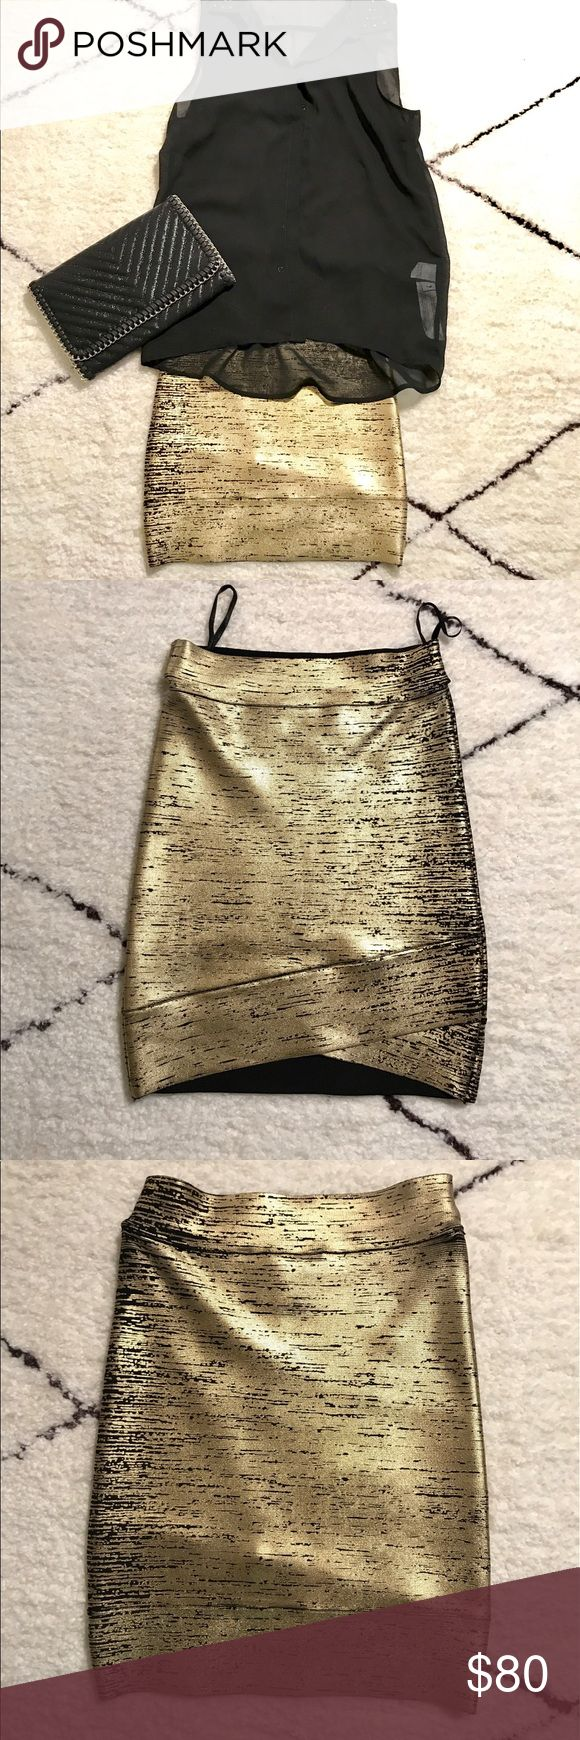 ✨brand 🆕✨ BCBG metallic gold bodycon skirt Super sexy and form fitting! Never worn, no defects. Guaranteed to catch peoples' attention. :) (Note: top and clutch can be purchased in a bundle or through my separate listings!) BCBGMaxAzria Skirts Mini